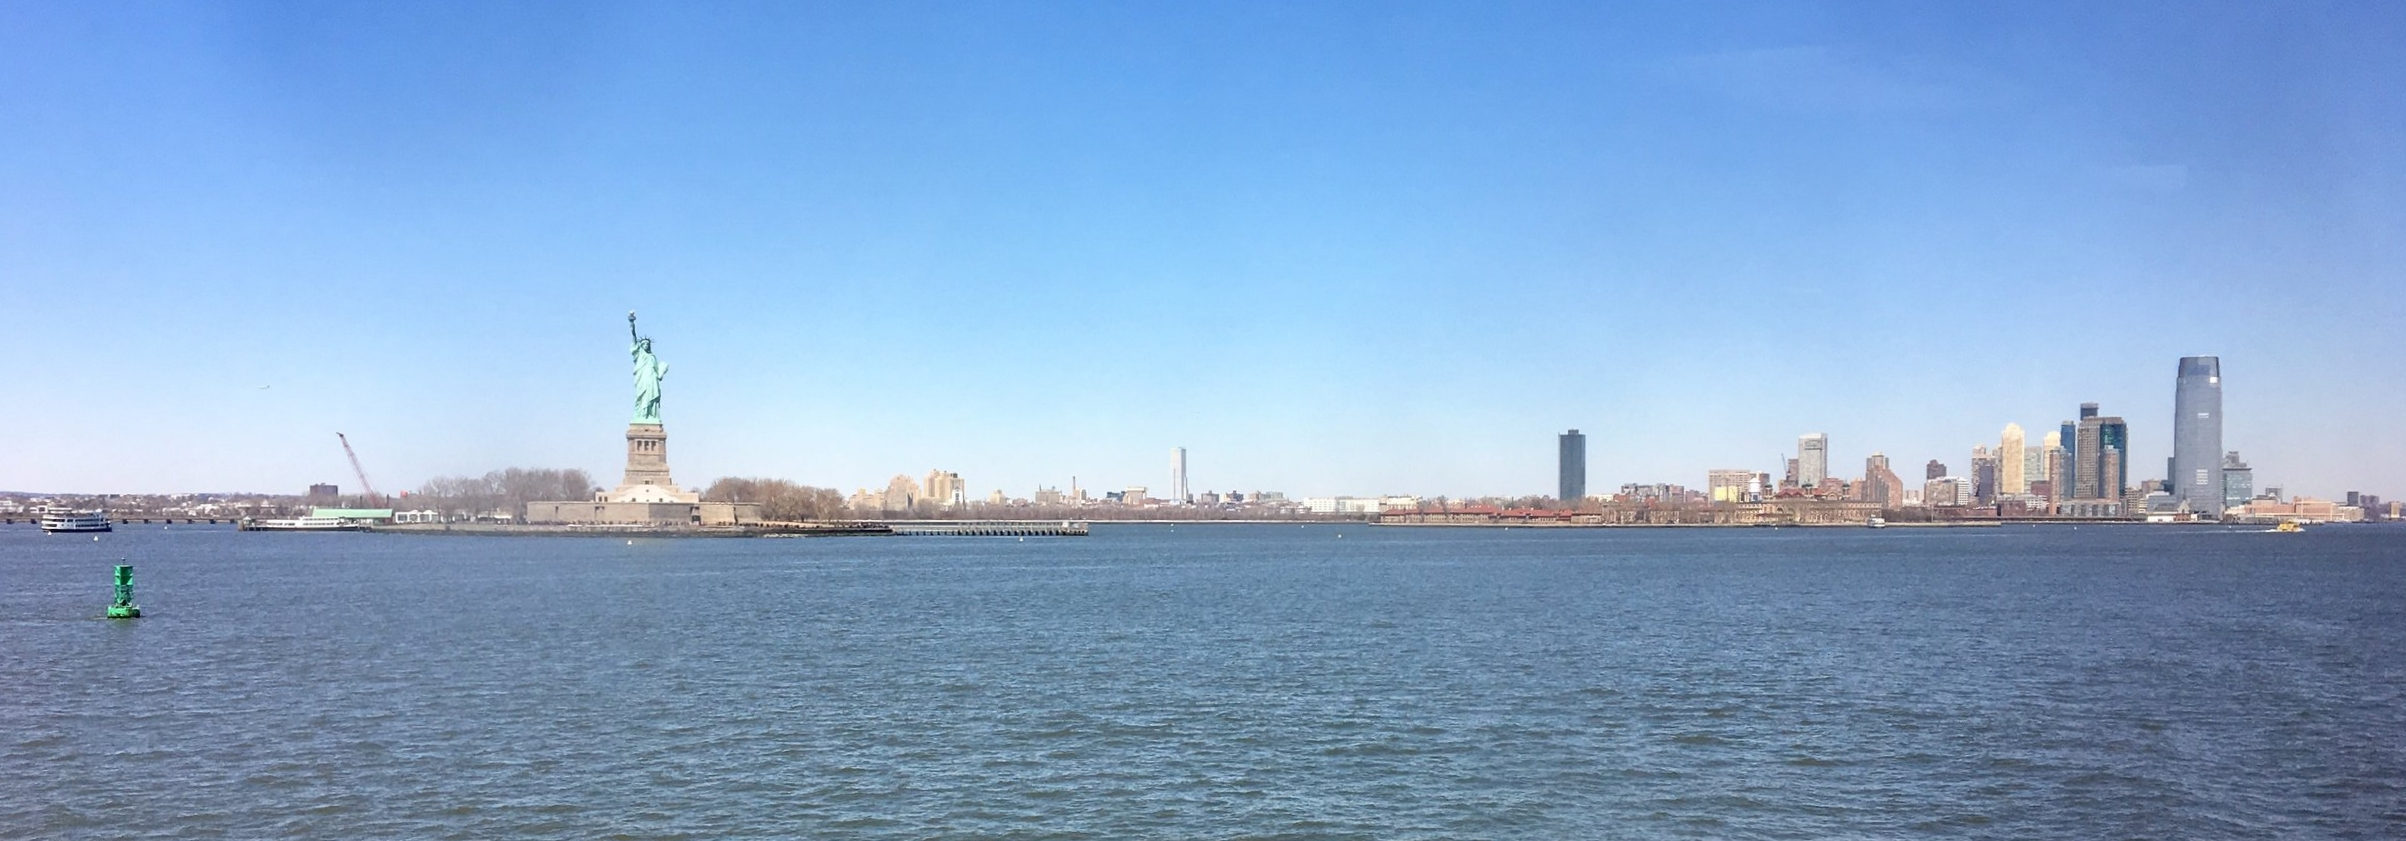 New York City - Staten Island Ferry trip - March 2017